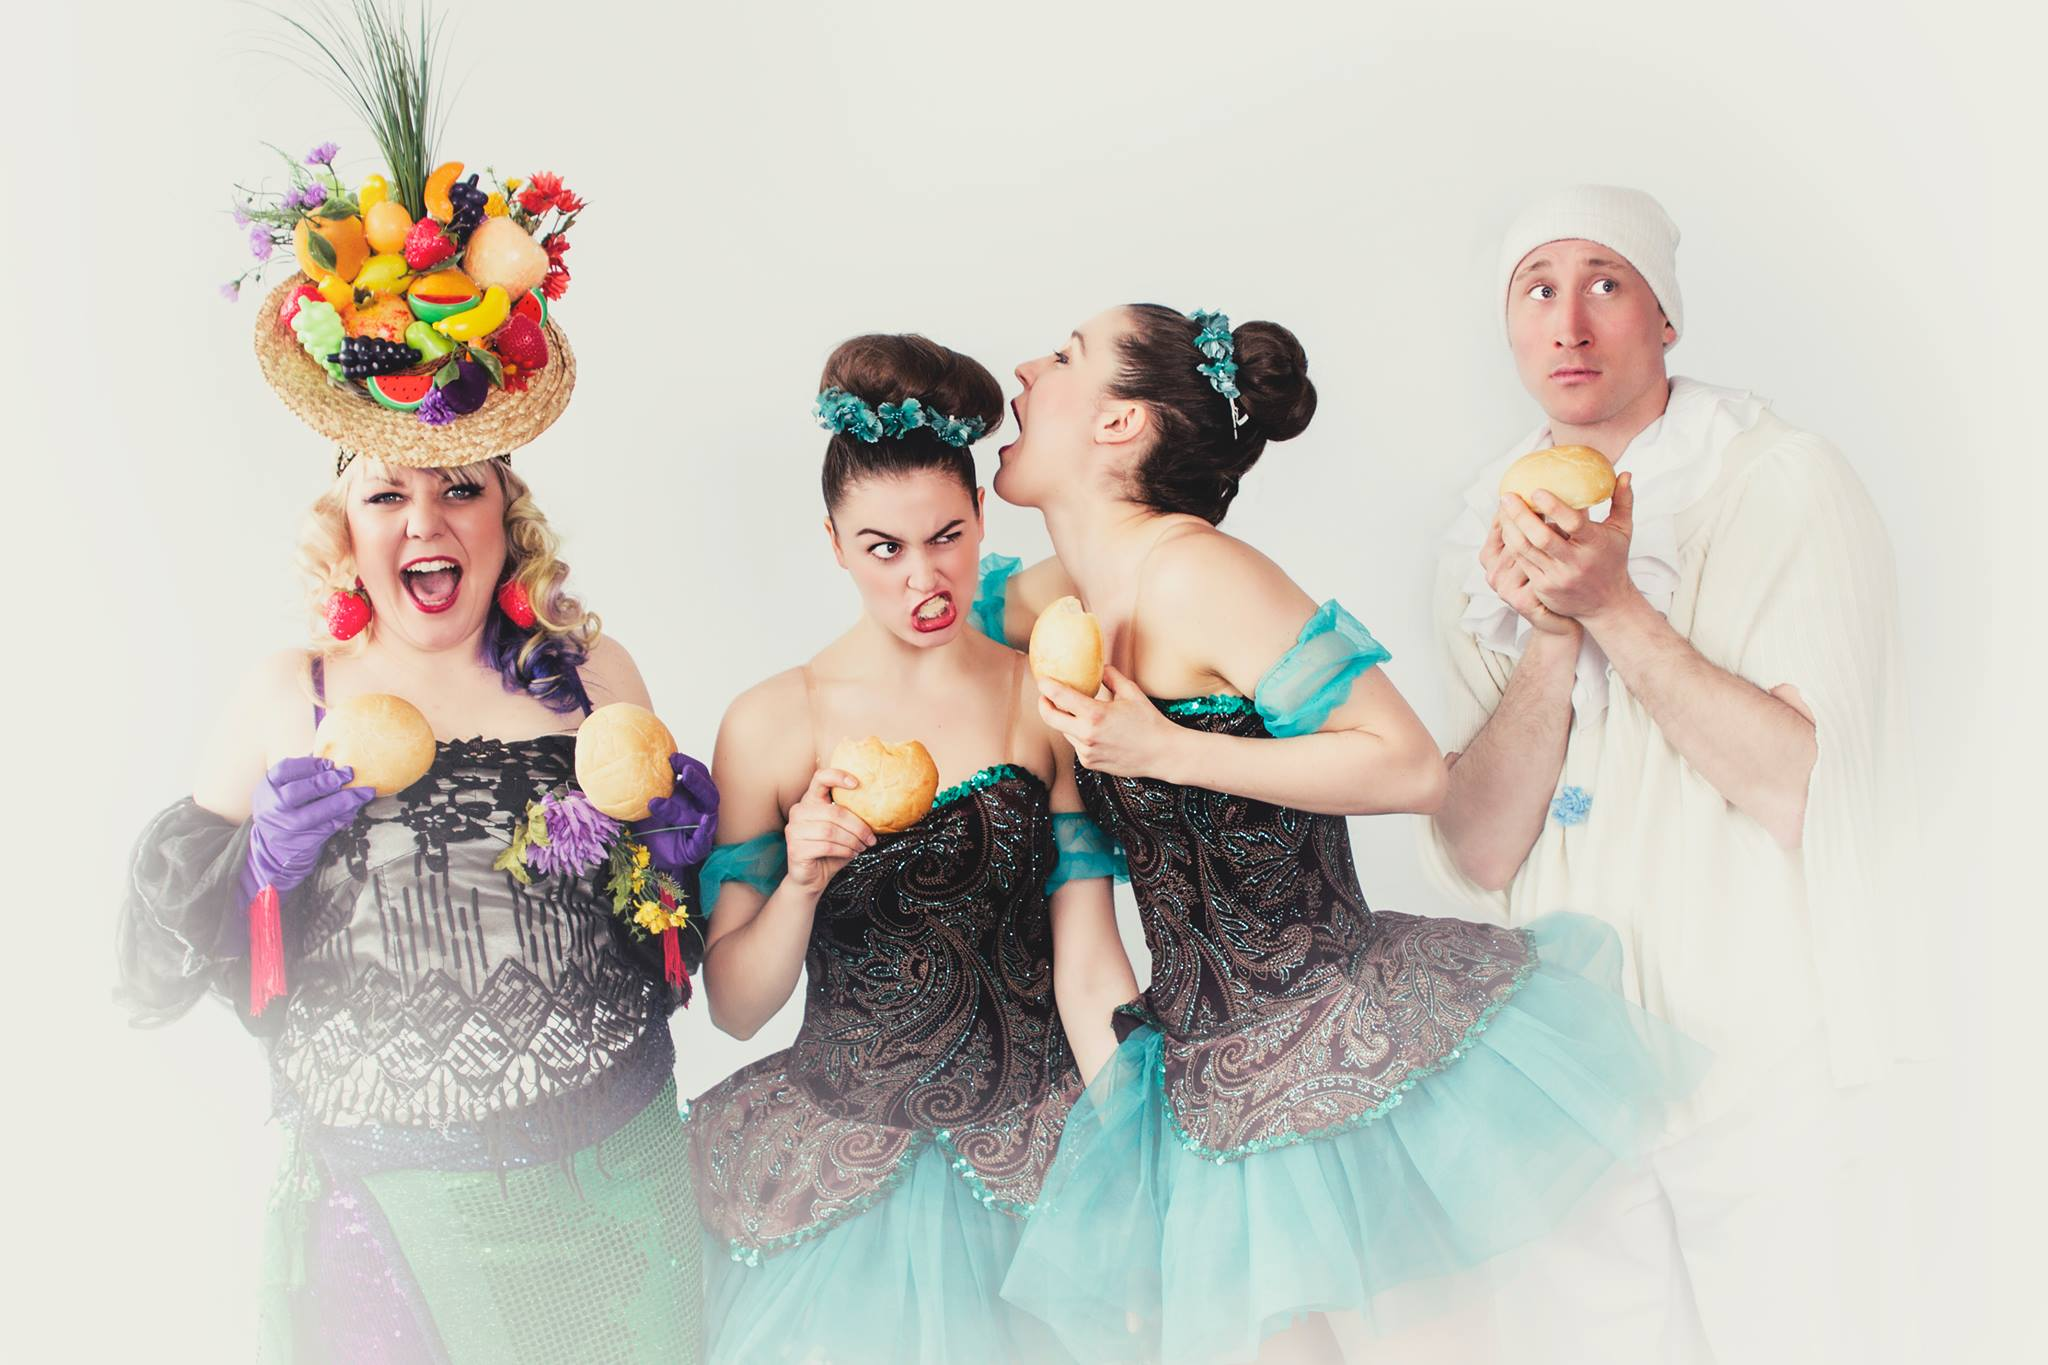 Clown around with Les Bunheads & Friends